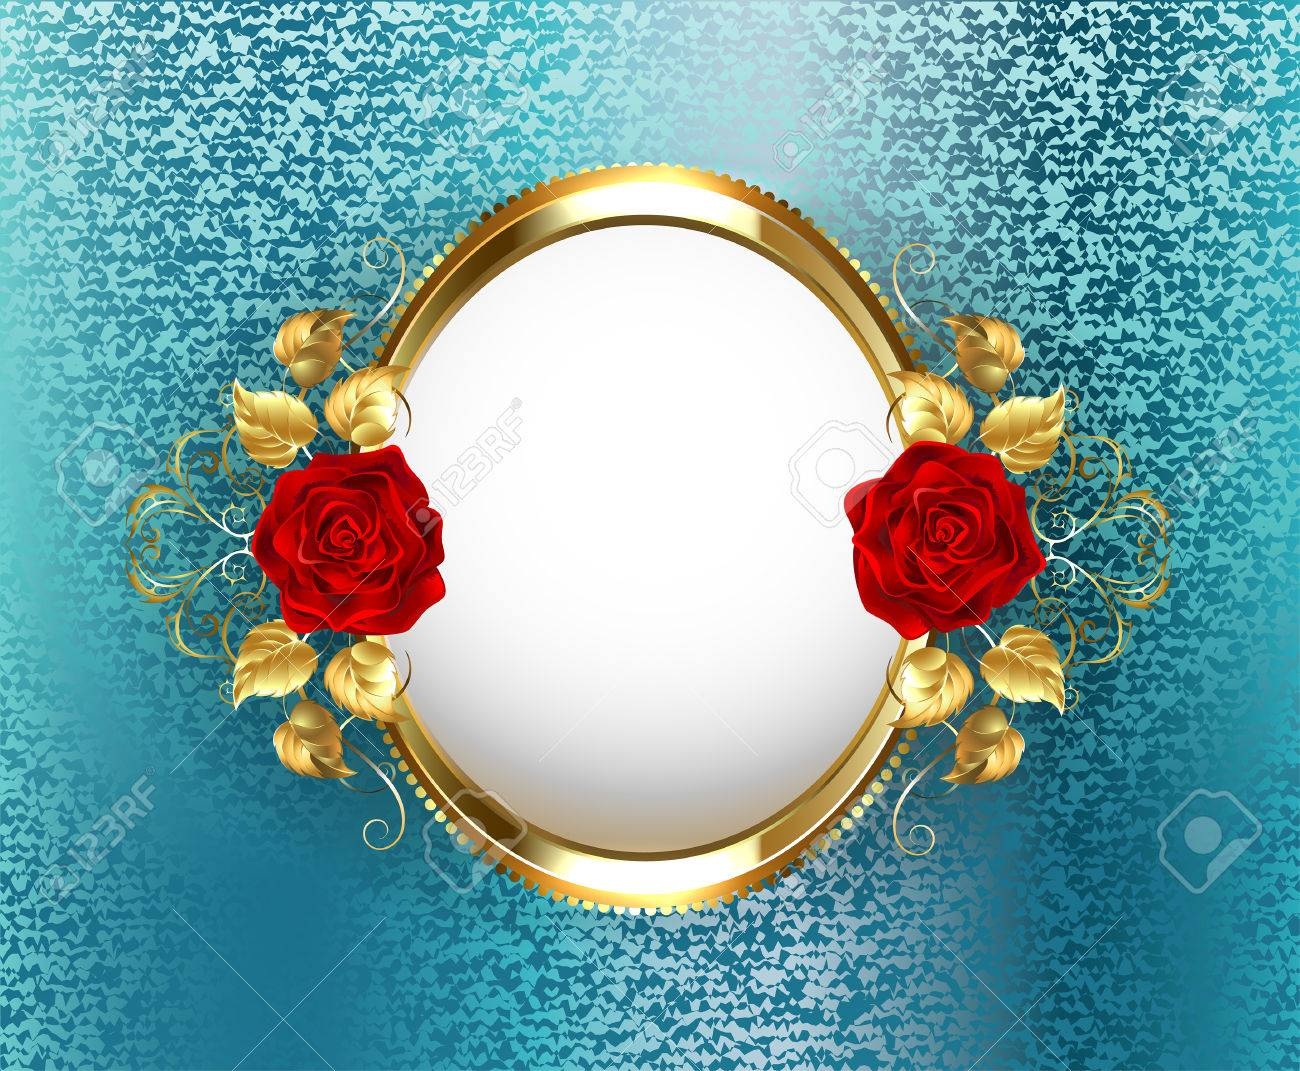 Gold Oval Frame With Red Roses On Turquoise, Brocade Background ...